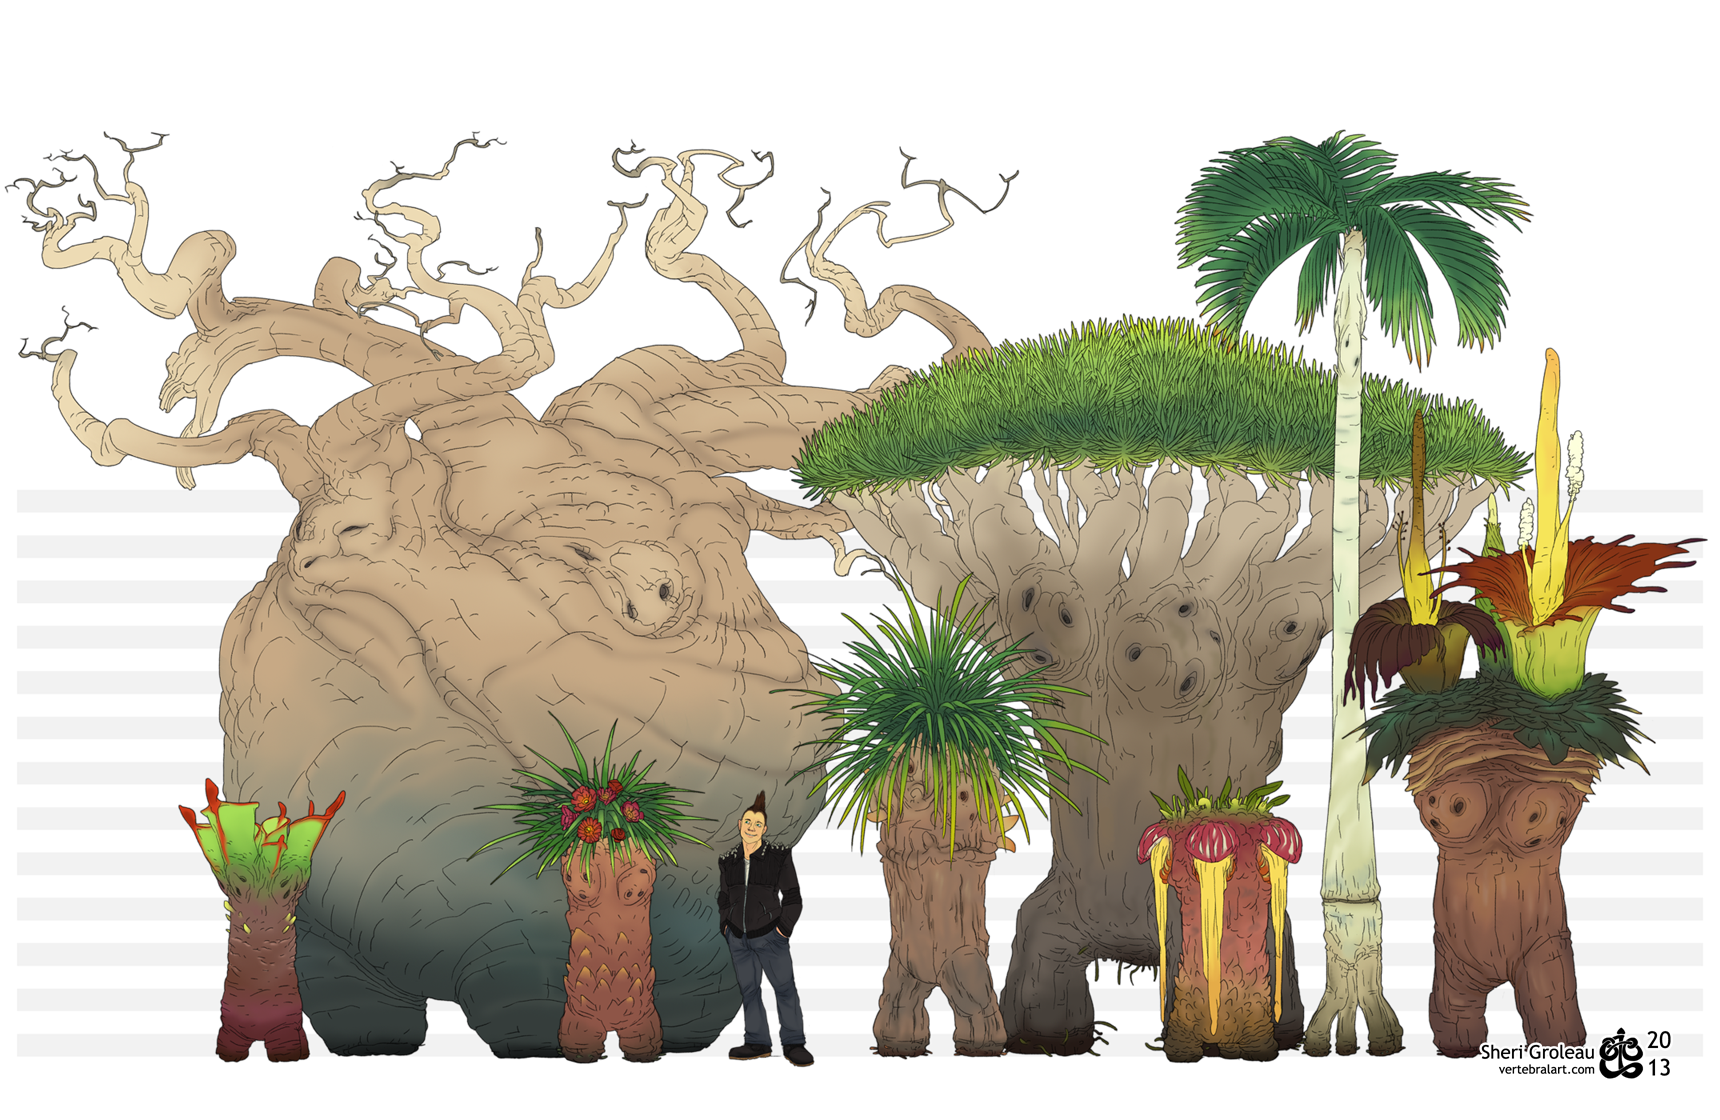 "Adult  Exeggutor  are producers, with some species also falling within the consumer population. Other consumer Pokemon species feed upon and rely on them to maintain and sustain their ecosystems. Exeggutor provide shelter, nutrients, as well as food and access to prey to other species. The presence of Exeggutor often denotes and / or produces a very healthy, diverse, and stable ecosystem. In some cases, the Pokemon itself is an ecosystem. Areas populated by the species are often untouched by human hands due in part by the Pokemon's special ability, ""Hypnosis"", which permits the Pokemon to ward away invaders. Intruders who venture into their ranges are quickly hypnotised and sent back to whence they came or, in cases of encounters with carnivorous Exeggutor, eaten."